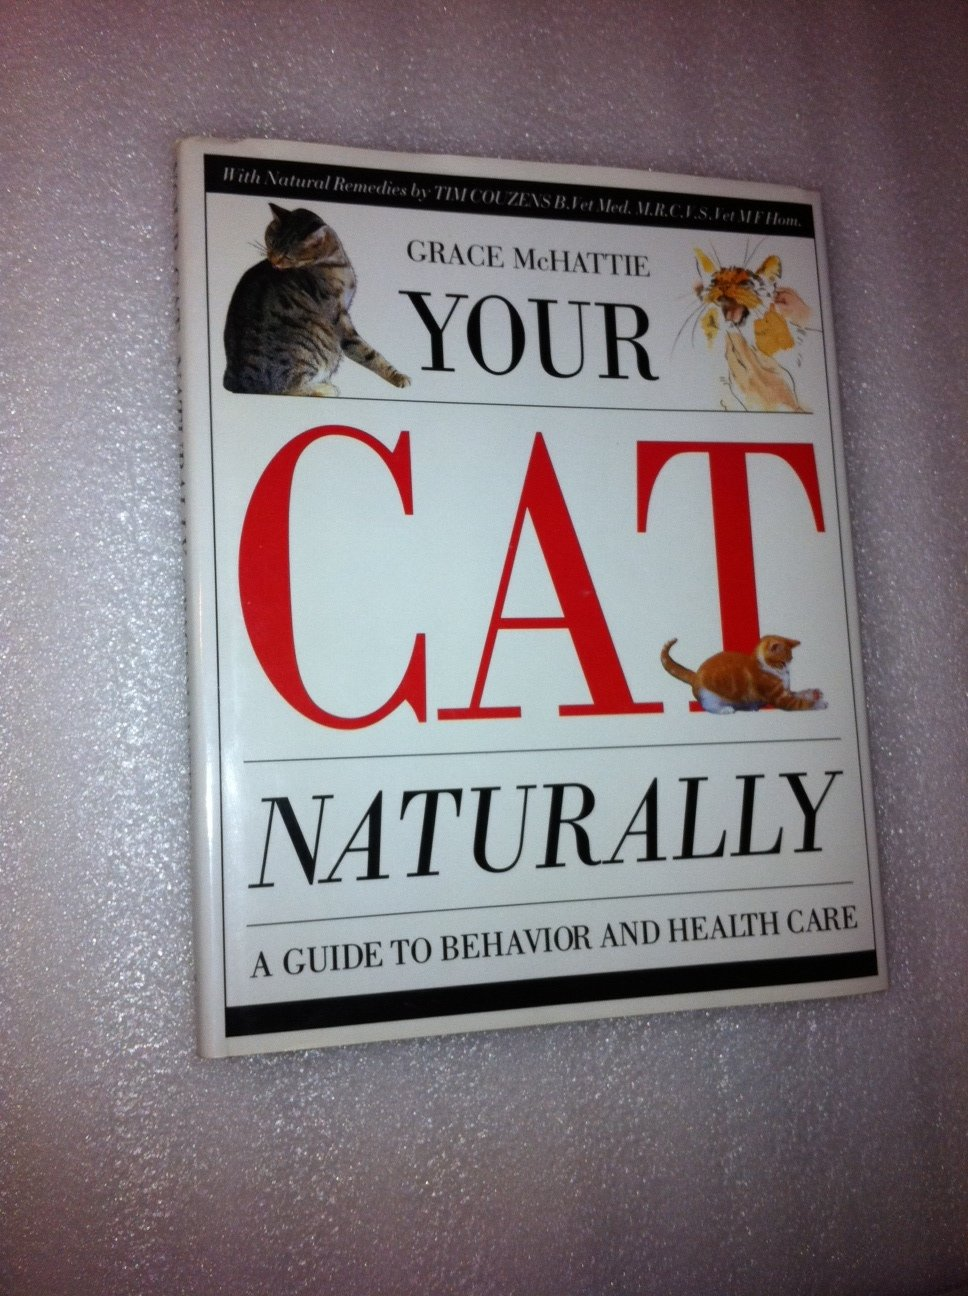 Your Cat Naturally - A Guide to Behavior and Health Care